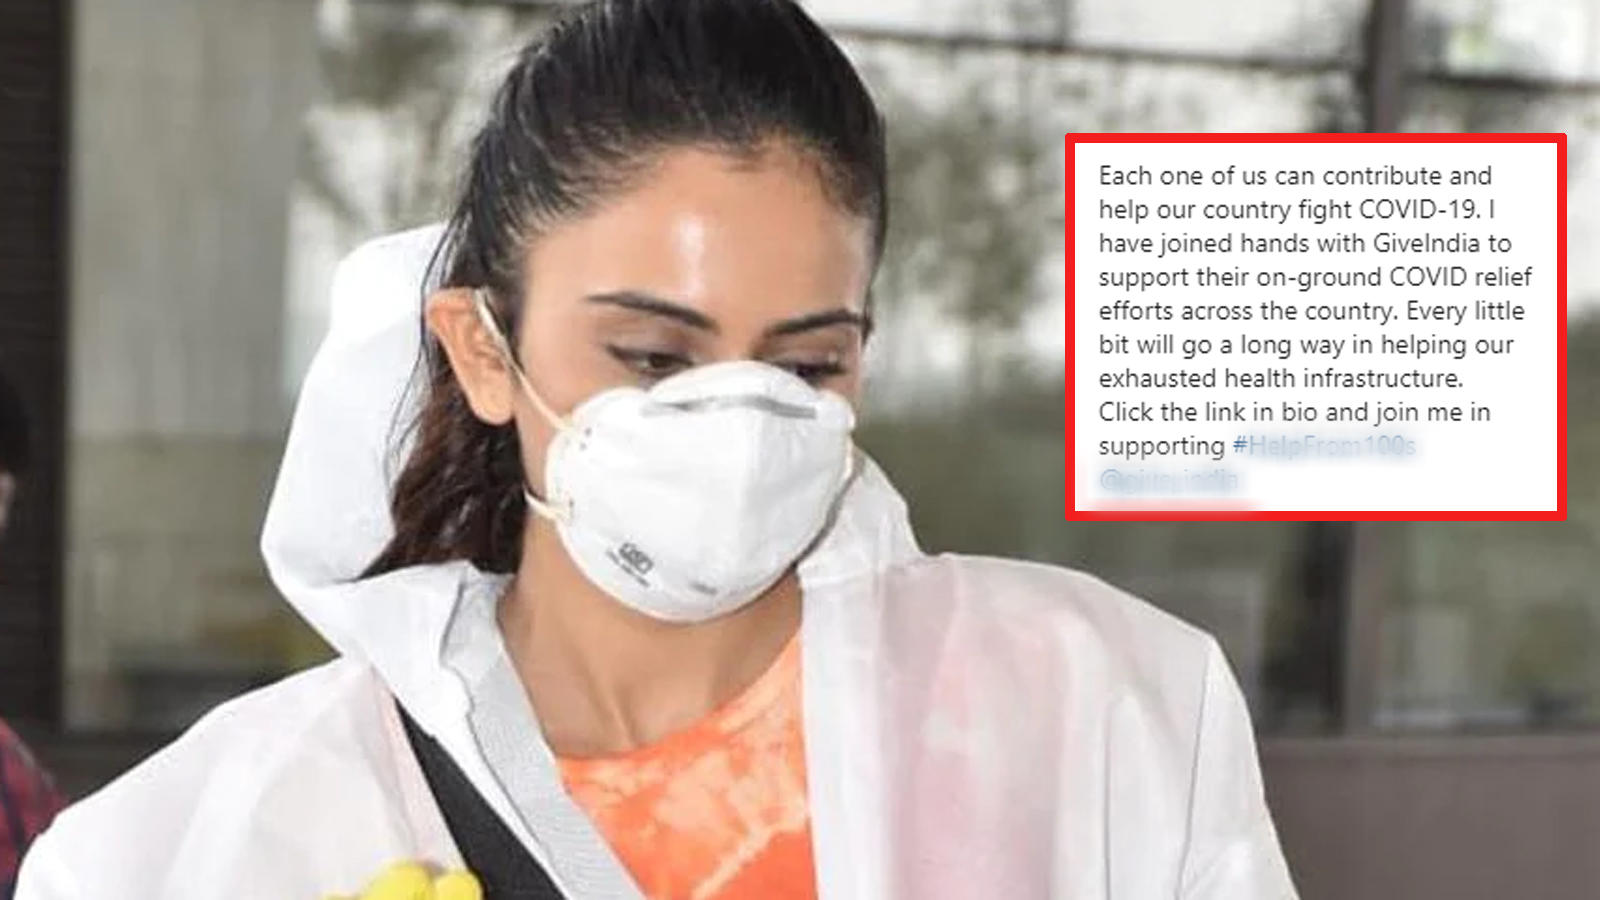 rakul-preet-singh-joins-hands-to-raise-funds-amid-coronavirus-crisis-in-india-says-each-one-of-us-can-contribute-and-help-our-country-fight-covid-19